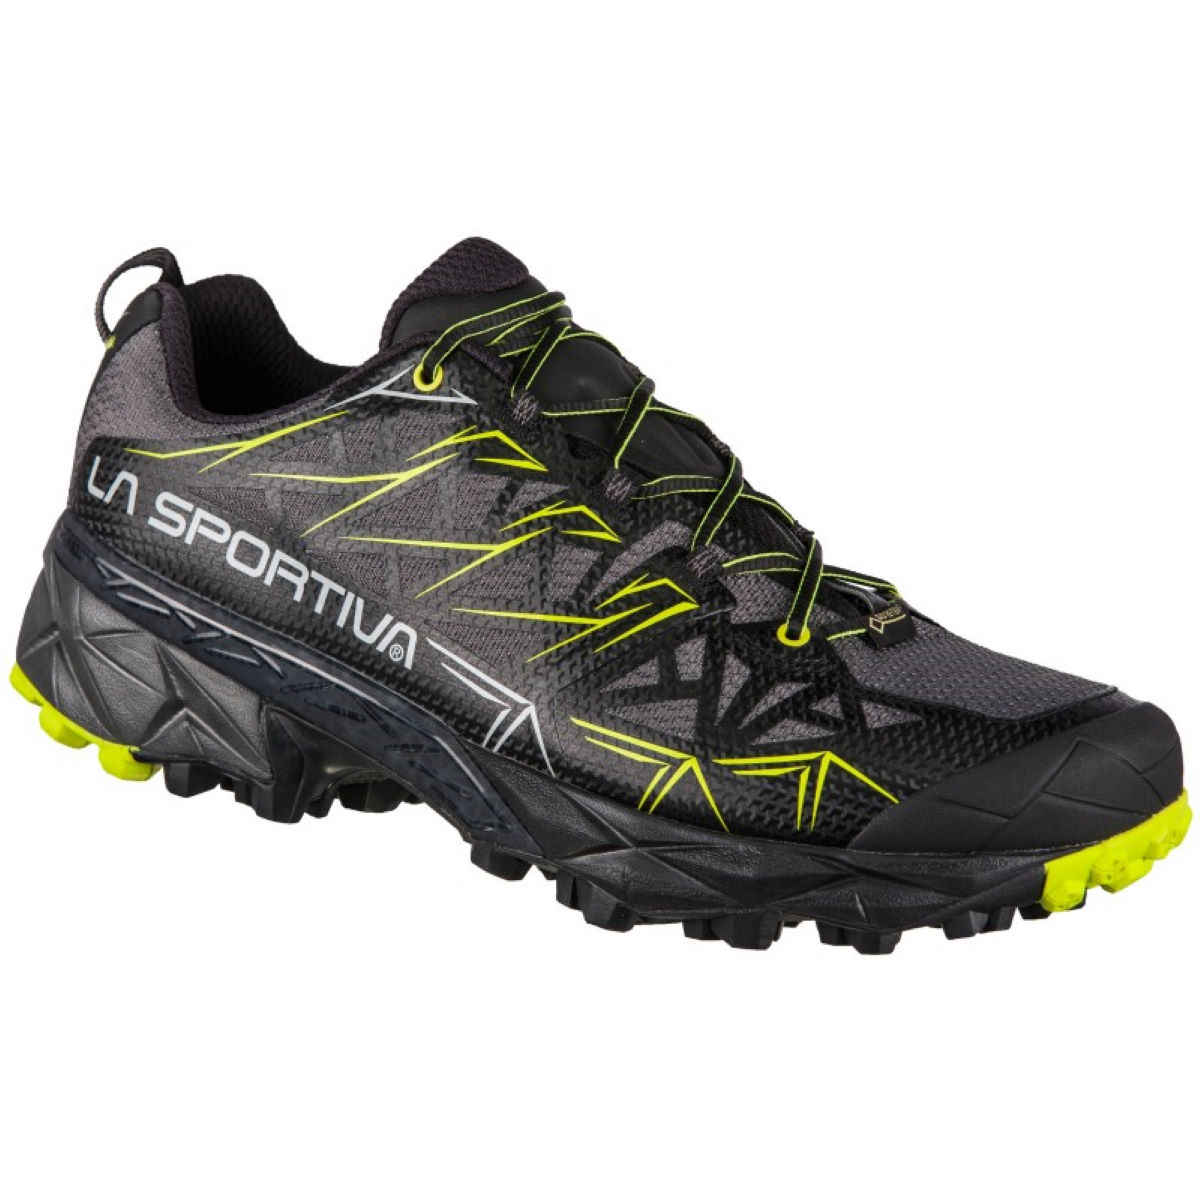 La Sportiva Akyra GTX Shoes - Zapatillas de trail running